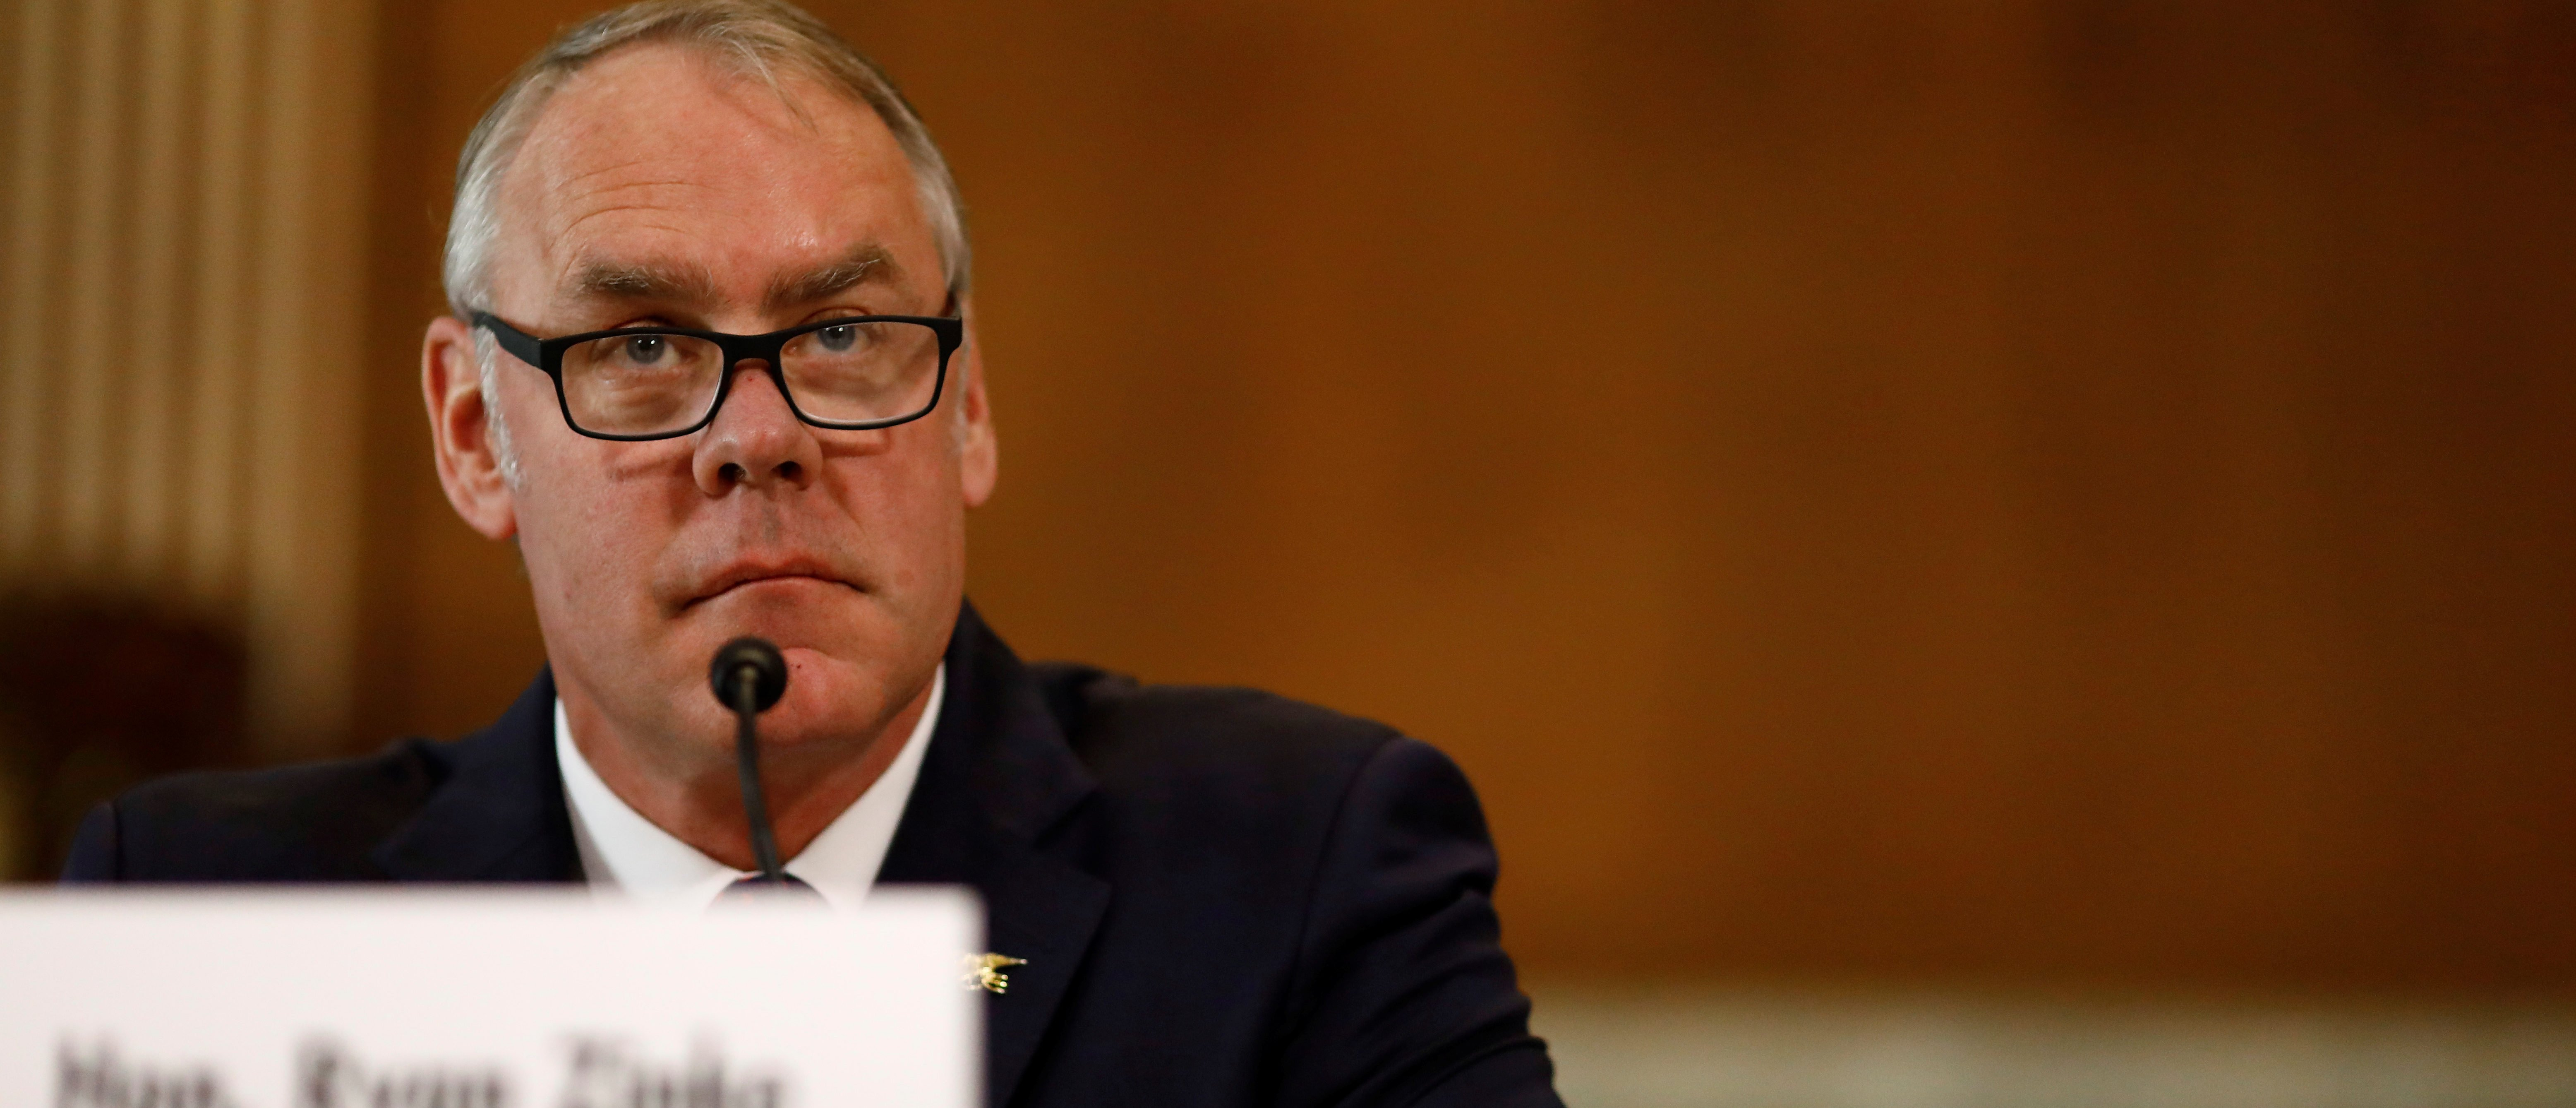 U.S. Secretary of the Interior Ryan Zinke testifies in front of the Senate Committee on Energy and Natural Resources on Capitol Hill in Washington, U.S. March 13, 2018. REUTERS/Eric Thayer